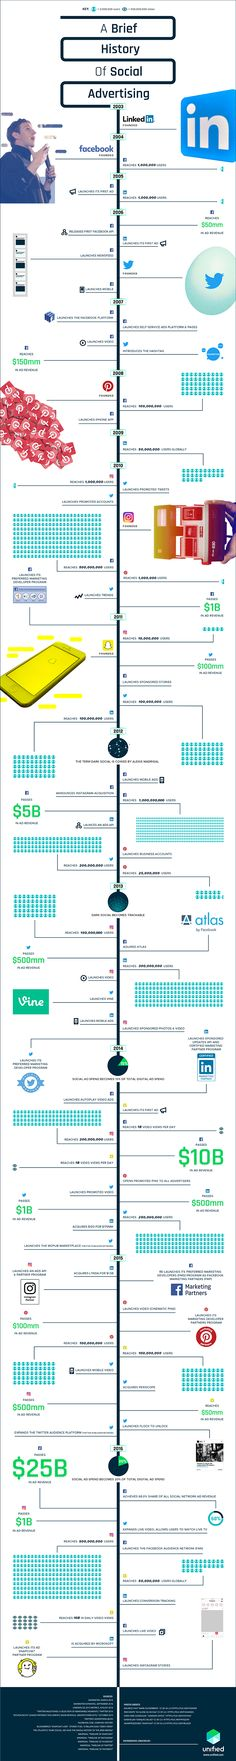 A Brief History of Social Advertising [Infographic]